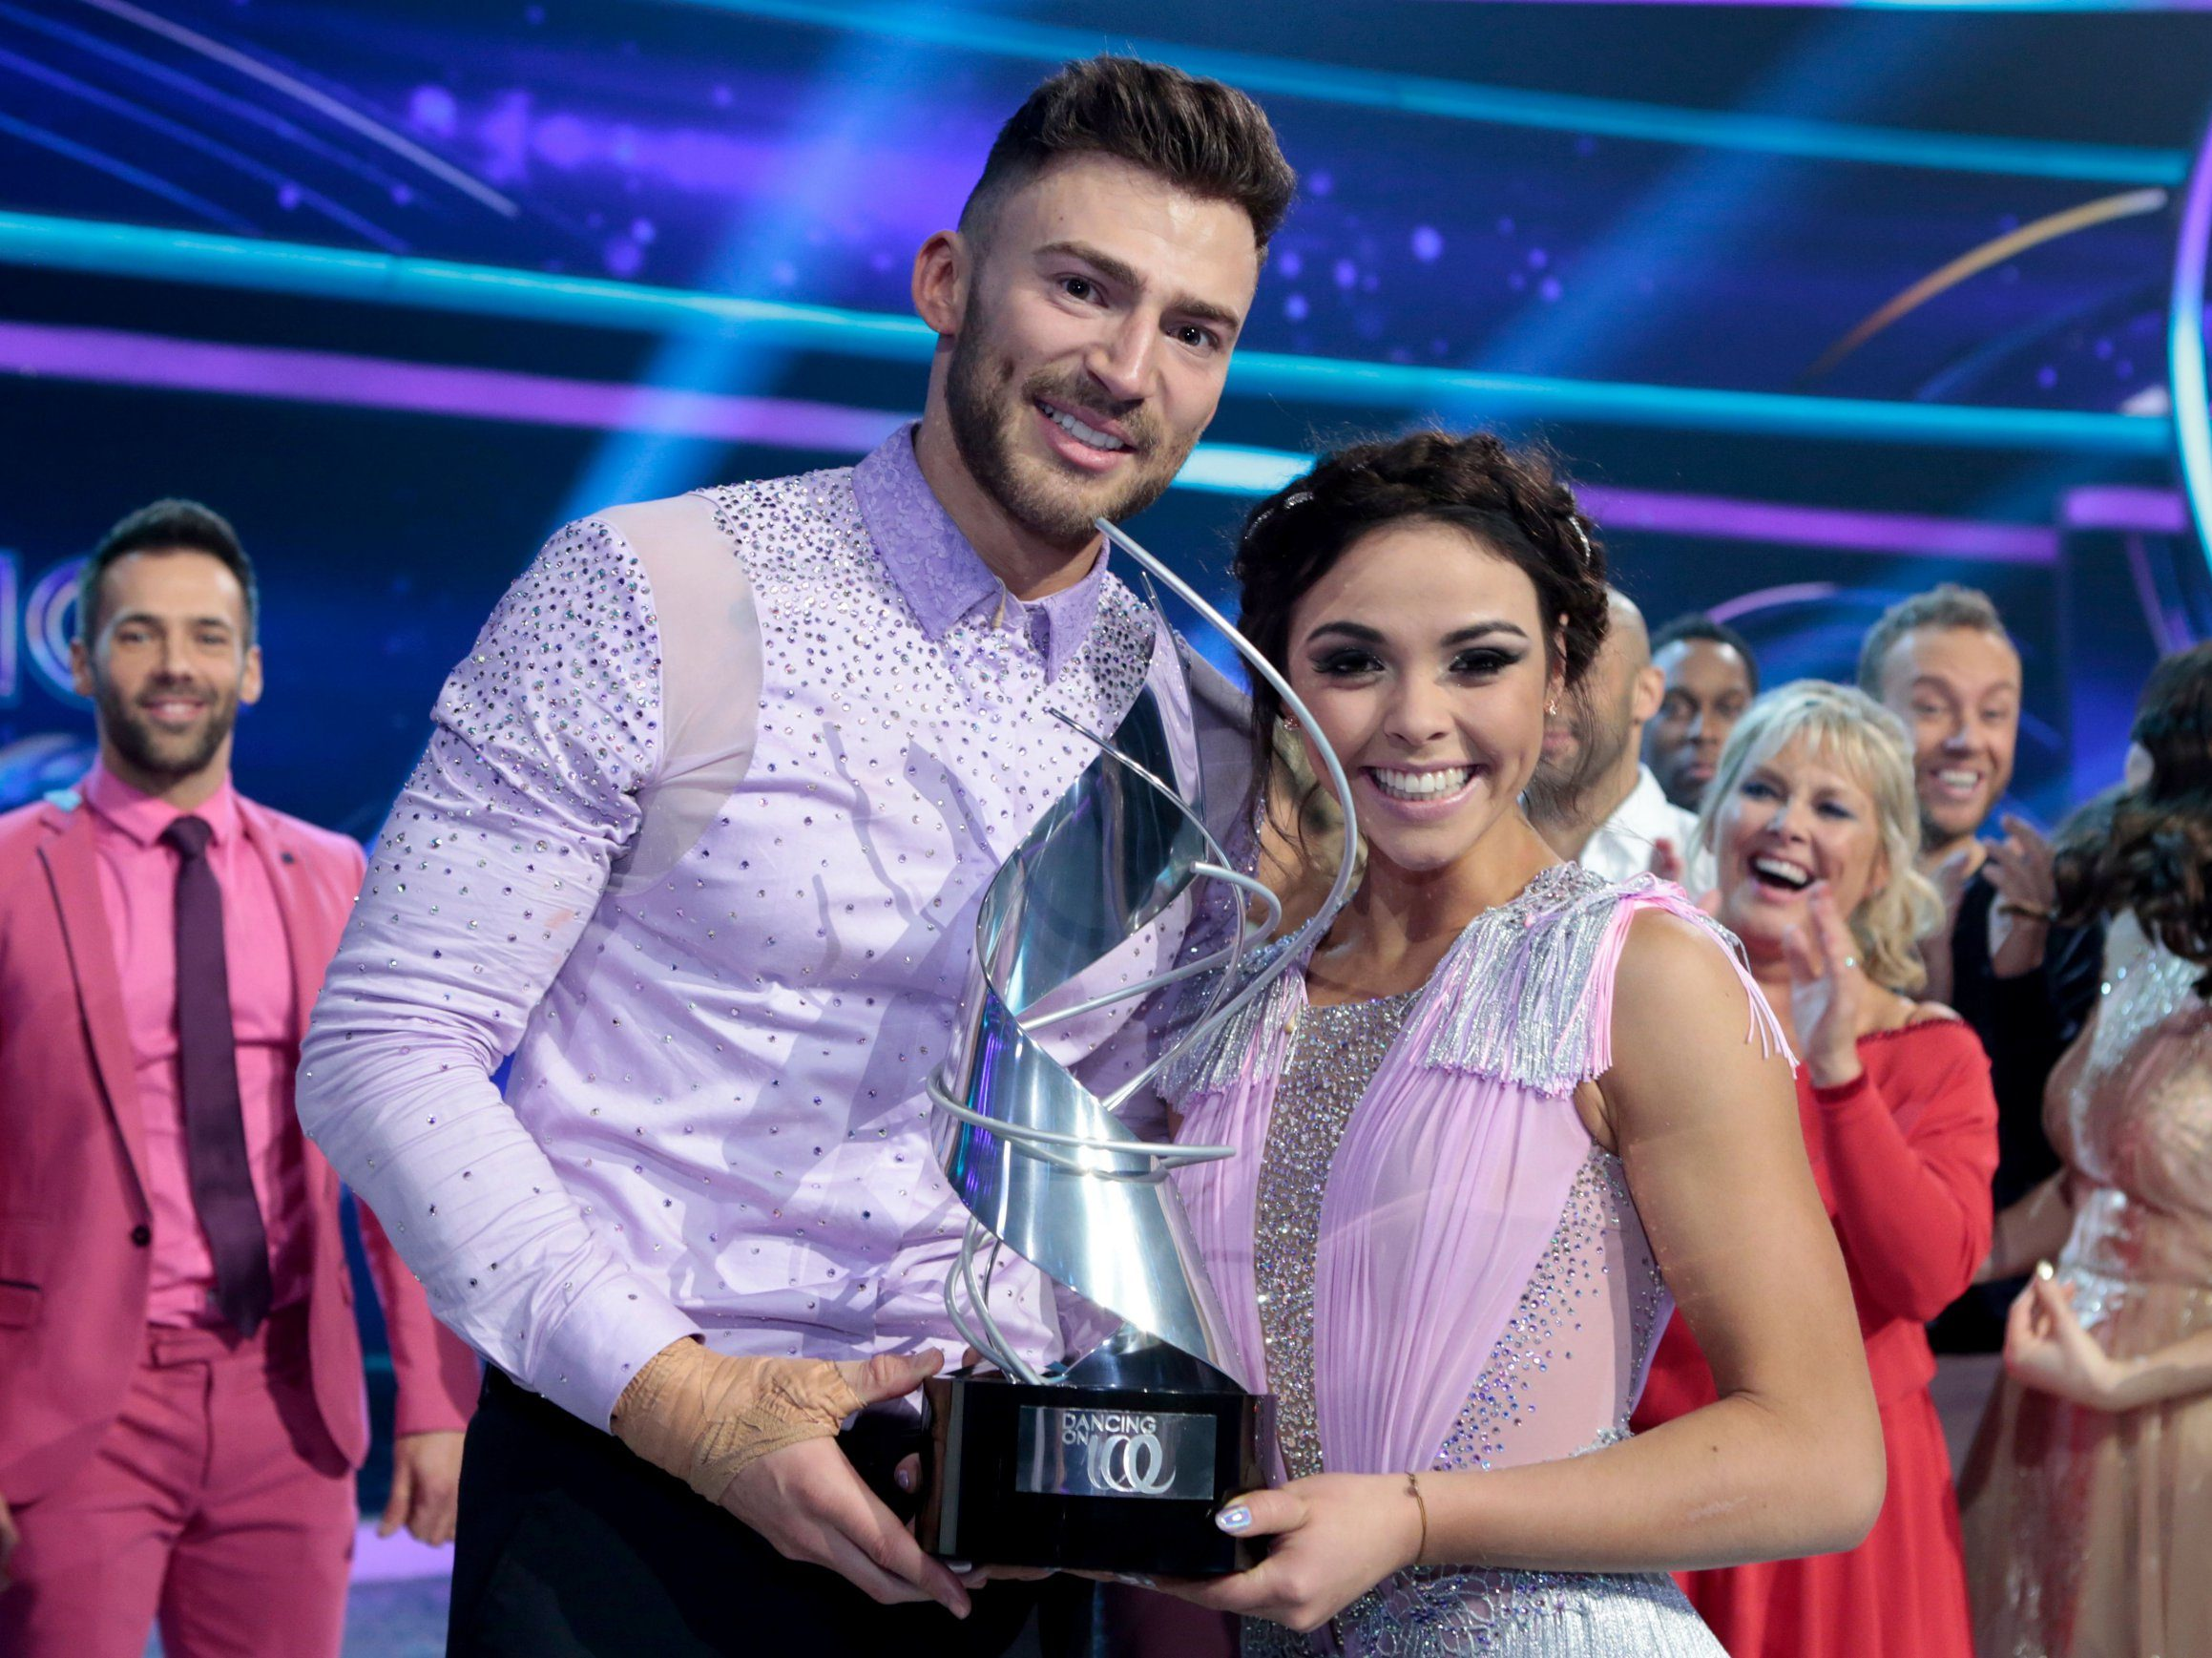 Editorial Use Only. No Merchandising. Mandatory Credit: Photo by Matt Frost/ITV/REX/Shutterstock (9452917fo) Jake Quickenden and Vanessa Bauer 'Dancing on Ice' TV show, Series 10, Episode 10, The Final, Hertfordshire, UK - 11 Mar 2018